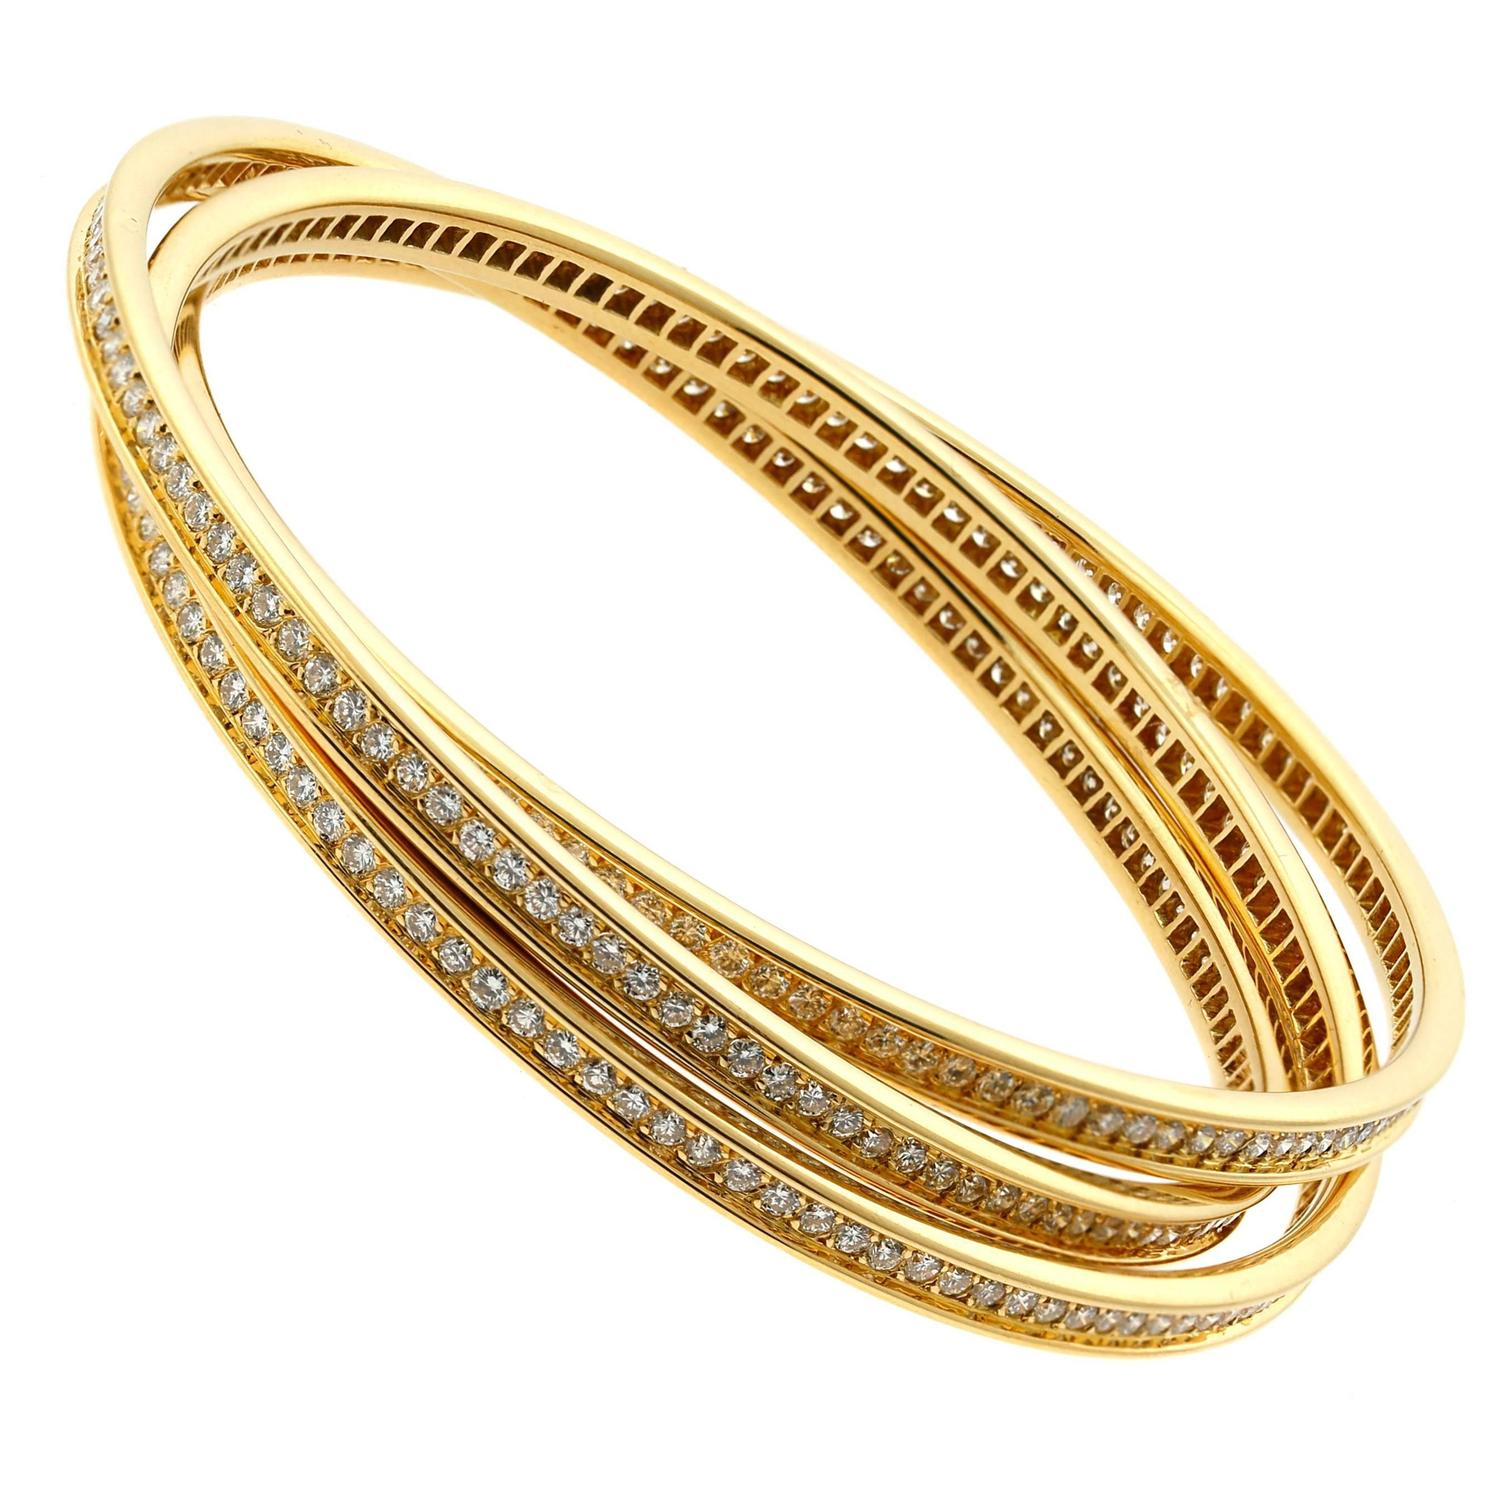 bracelets copy for women cartier bangle philippines jay jewelry inspired ann product cebu yellow bangles gold fullsizerender